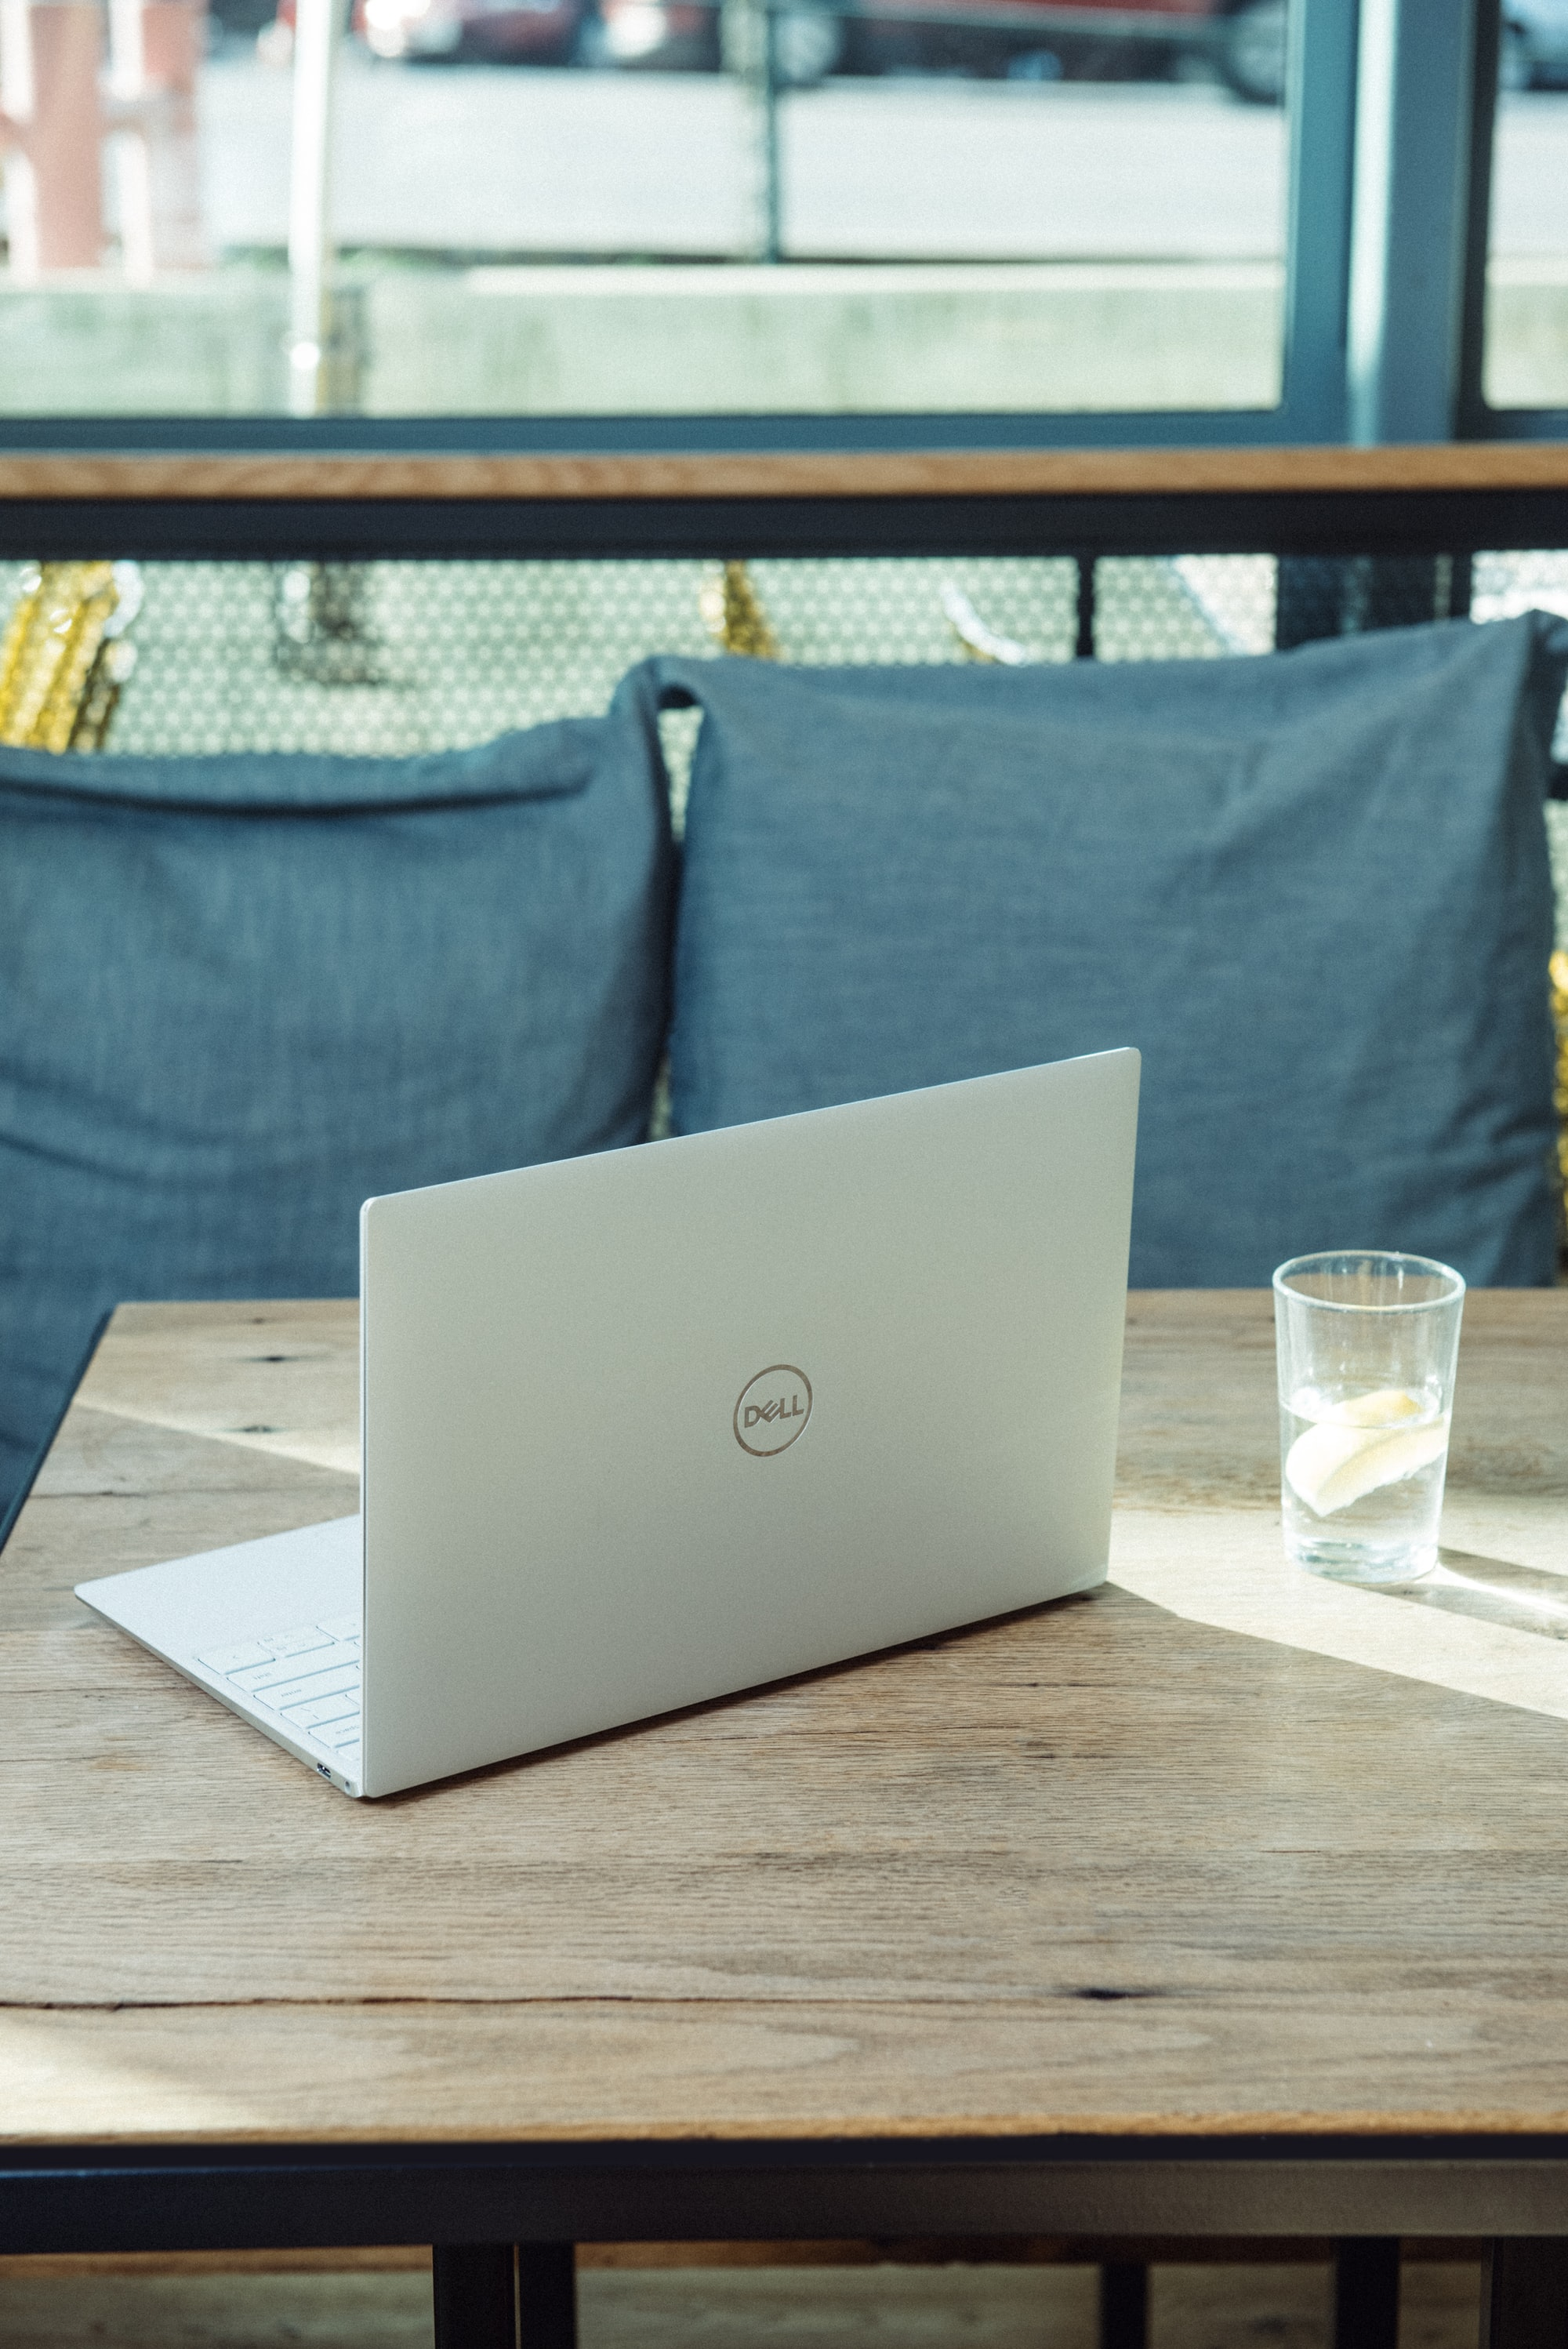 A laptop with a cup of water outside symbolizing the new found freedom of working wherever you want